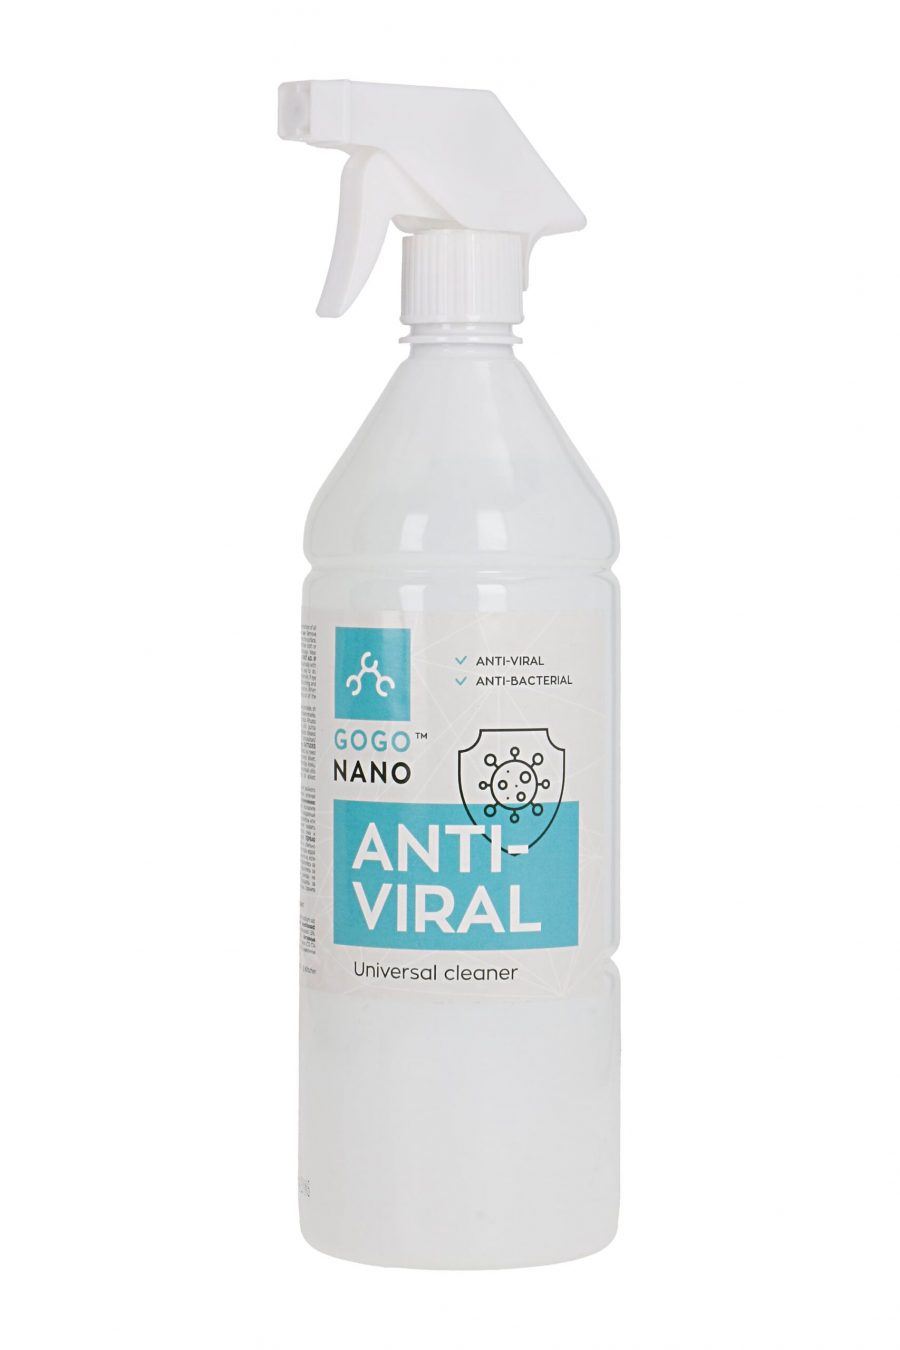 Viral cleaning tips